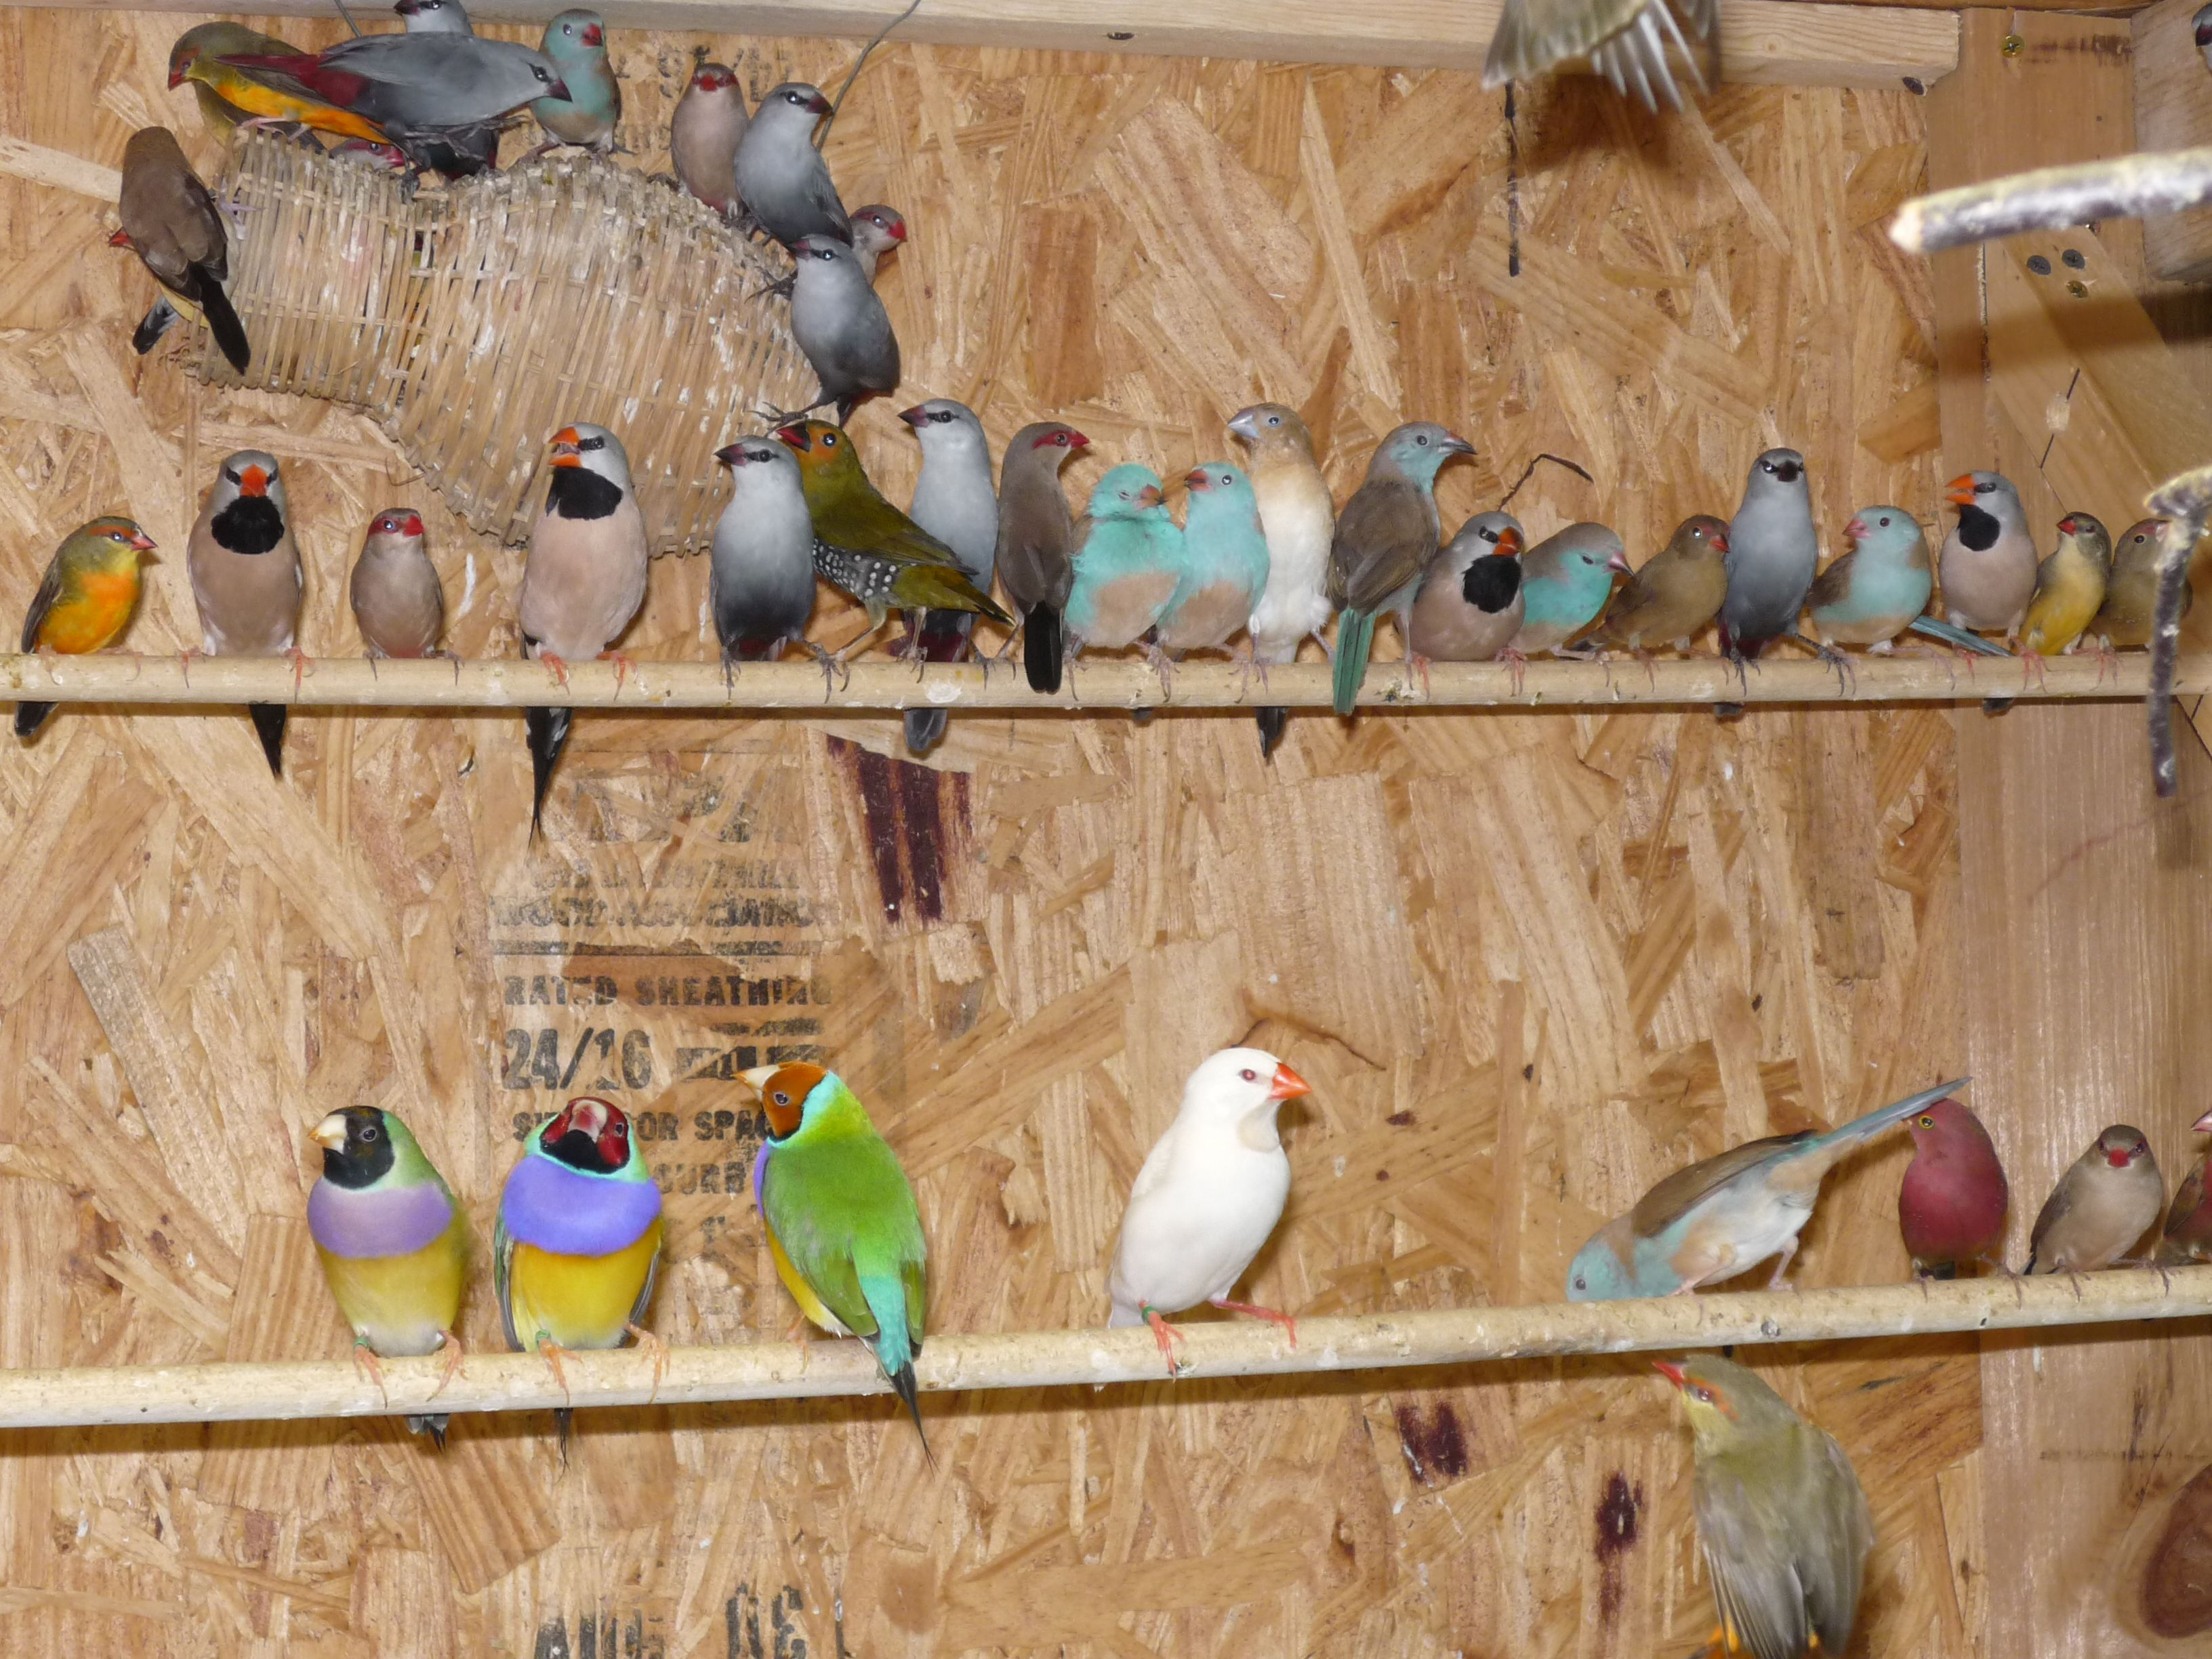 http://sacexoticfinch.com/wp-content/uploads/2011/11/bird-room-014.jpg